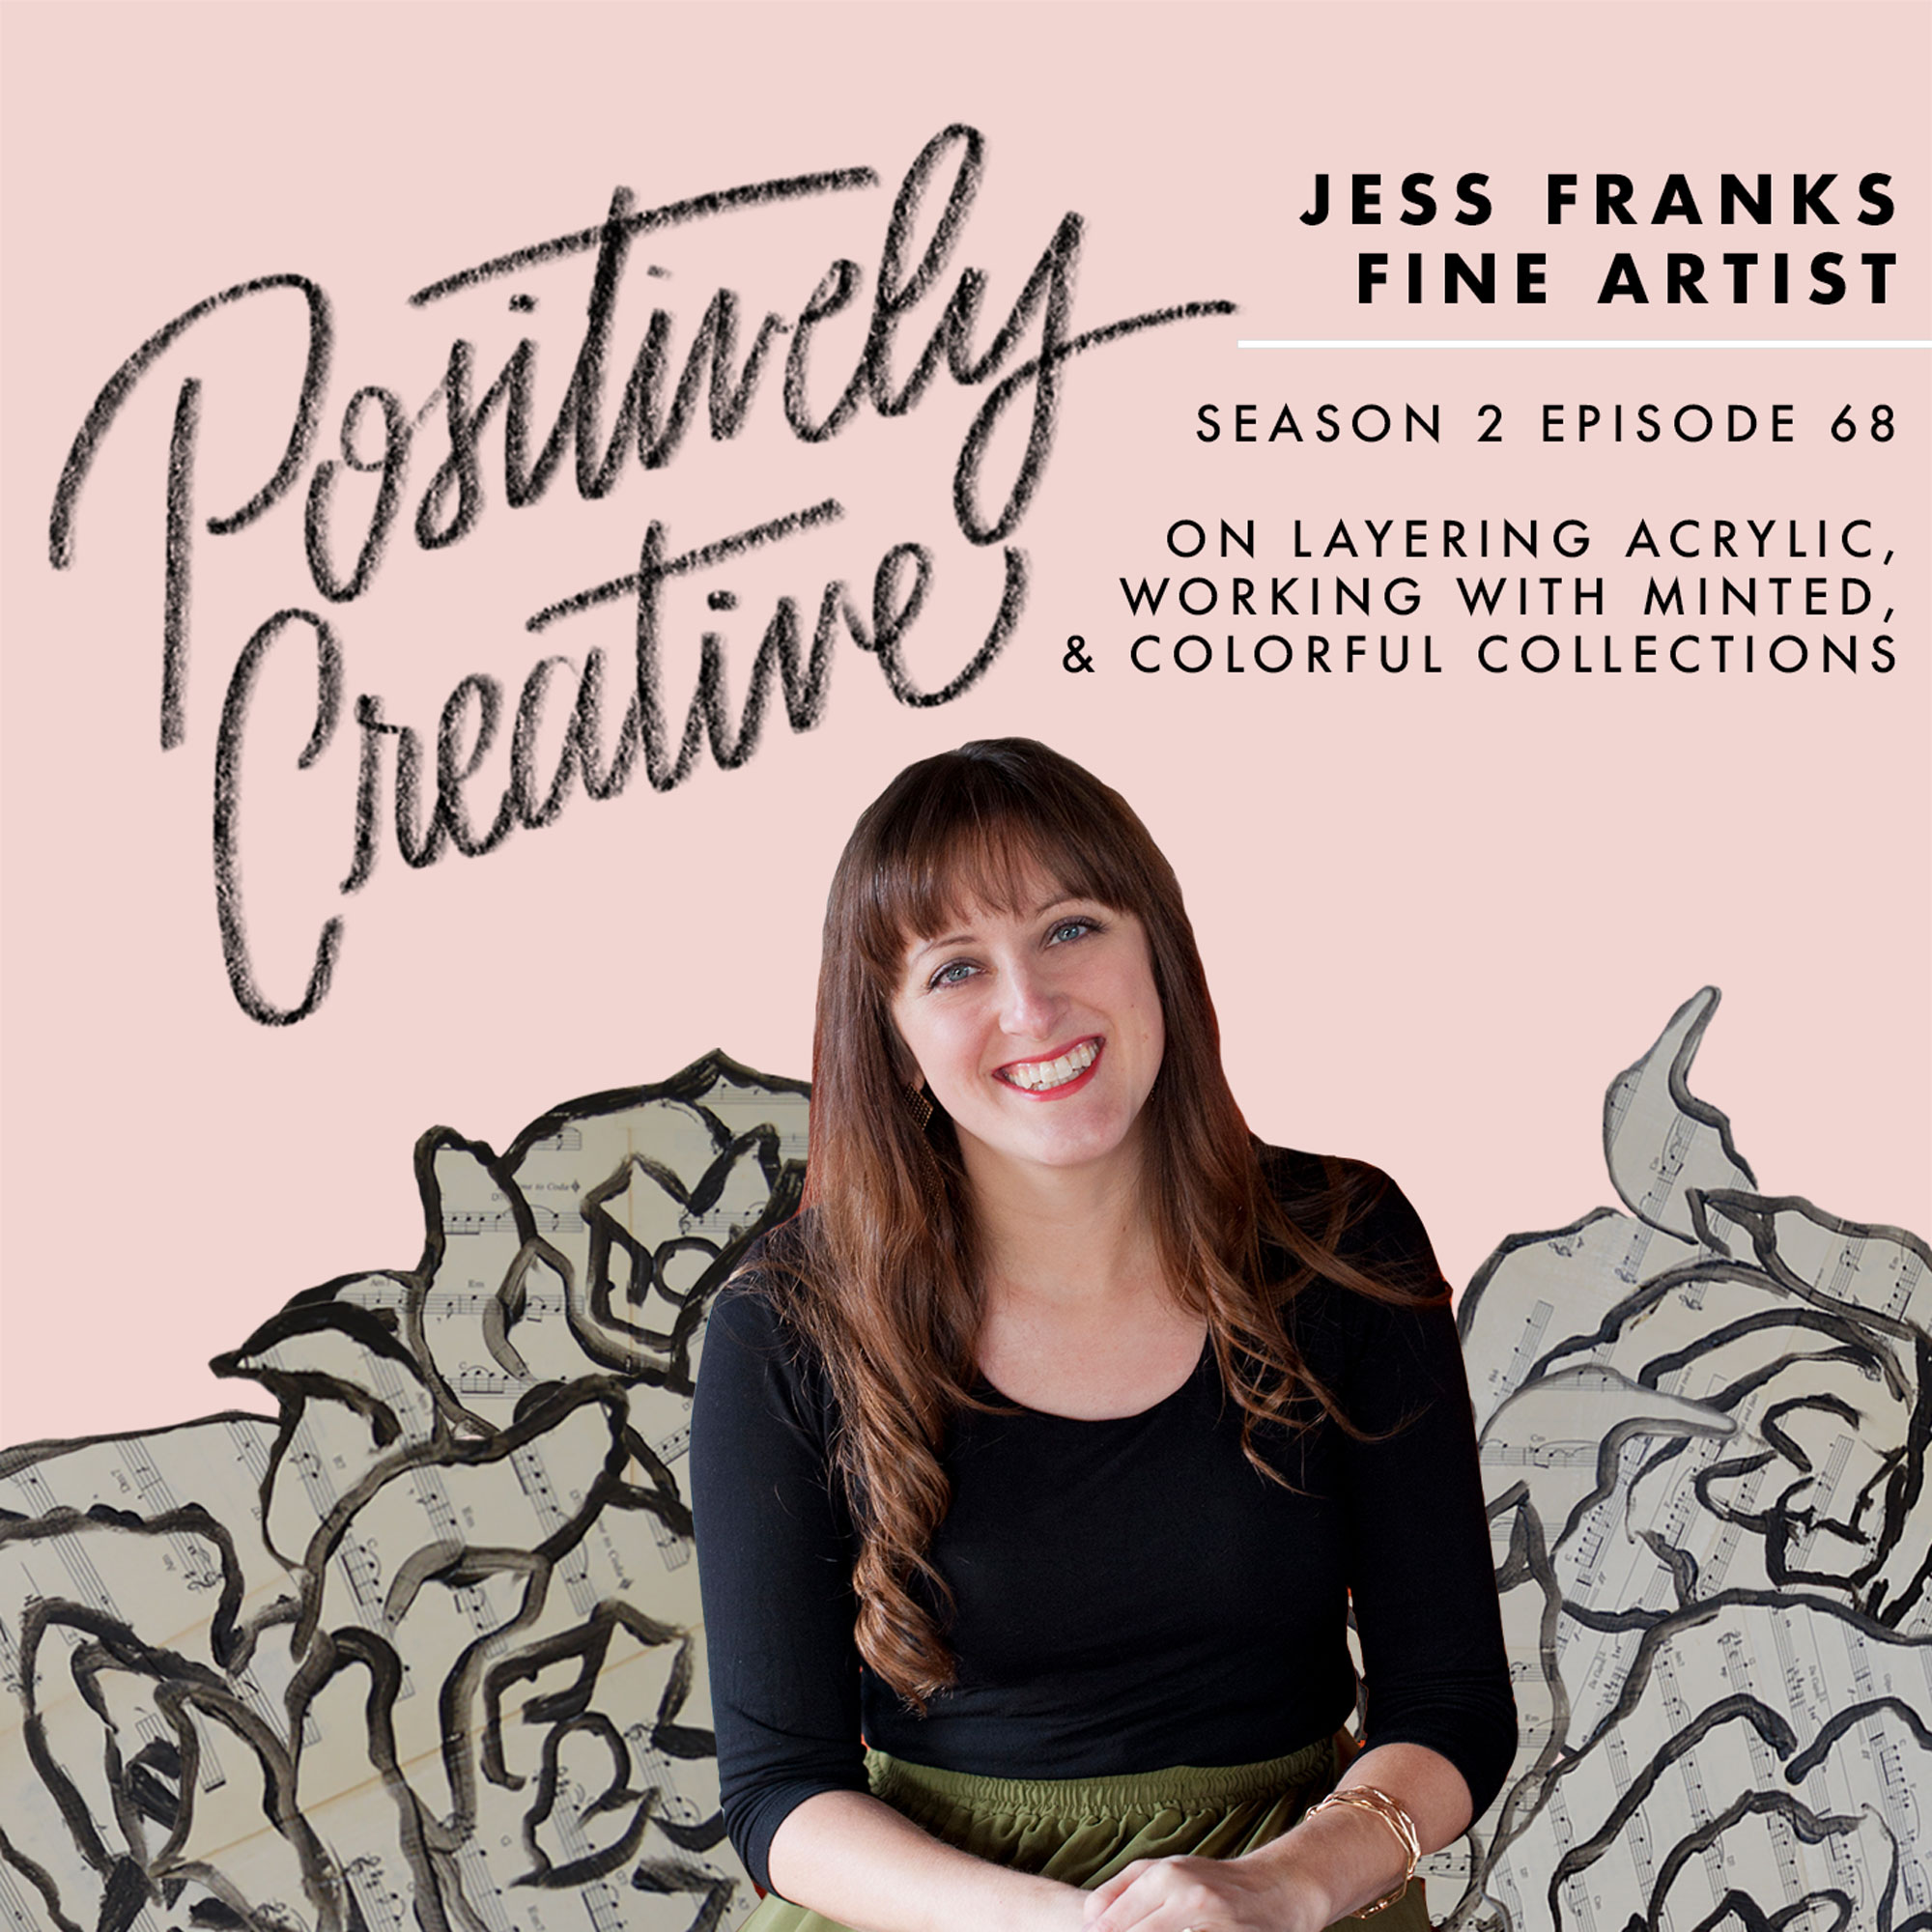 S2-Ep-68---Jess-Franks,-Fine-Artist-on-Layering-Acrylic,-Working-with-Minted,-&-Colorful-Collections.jpg